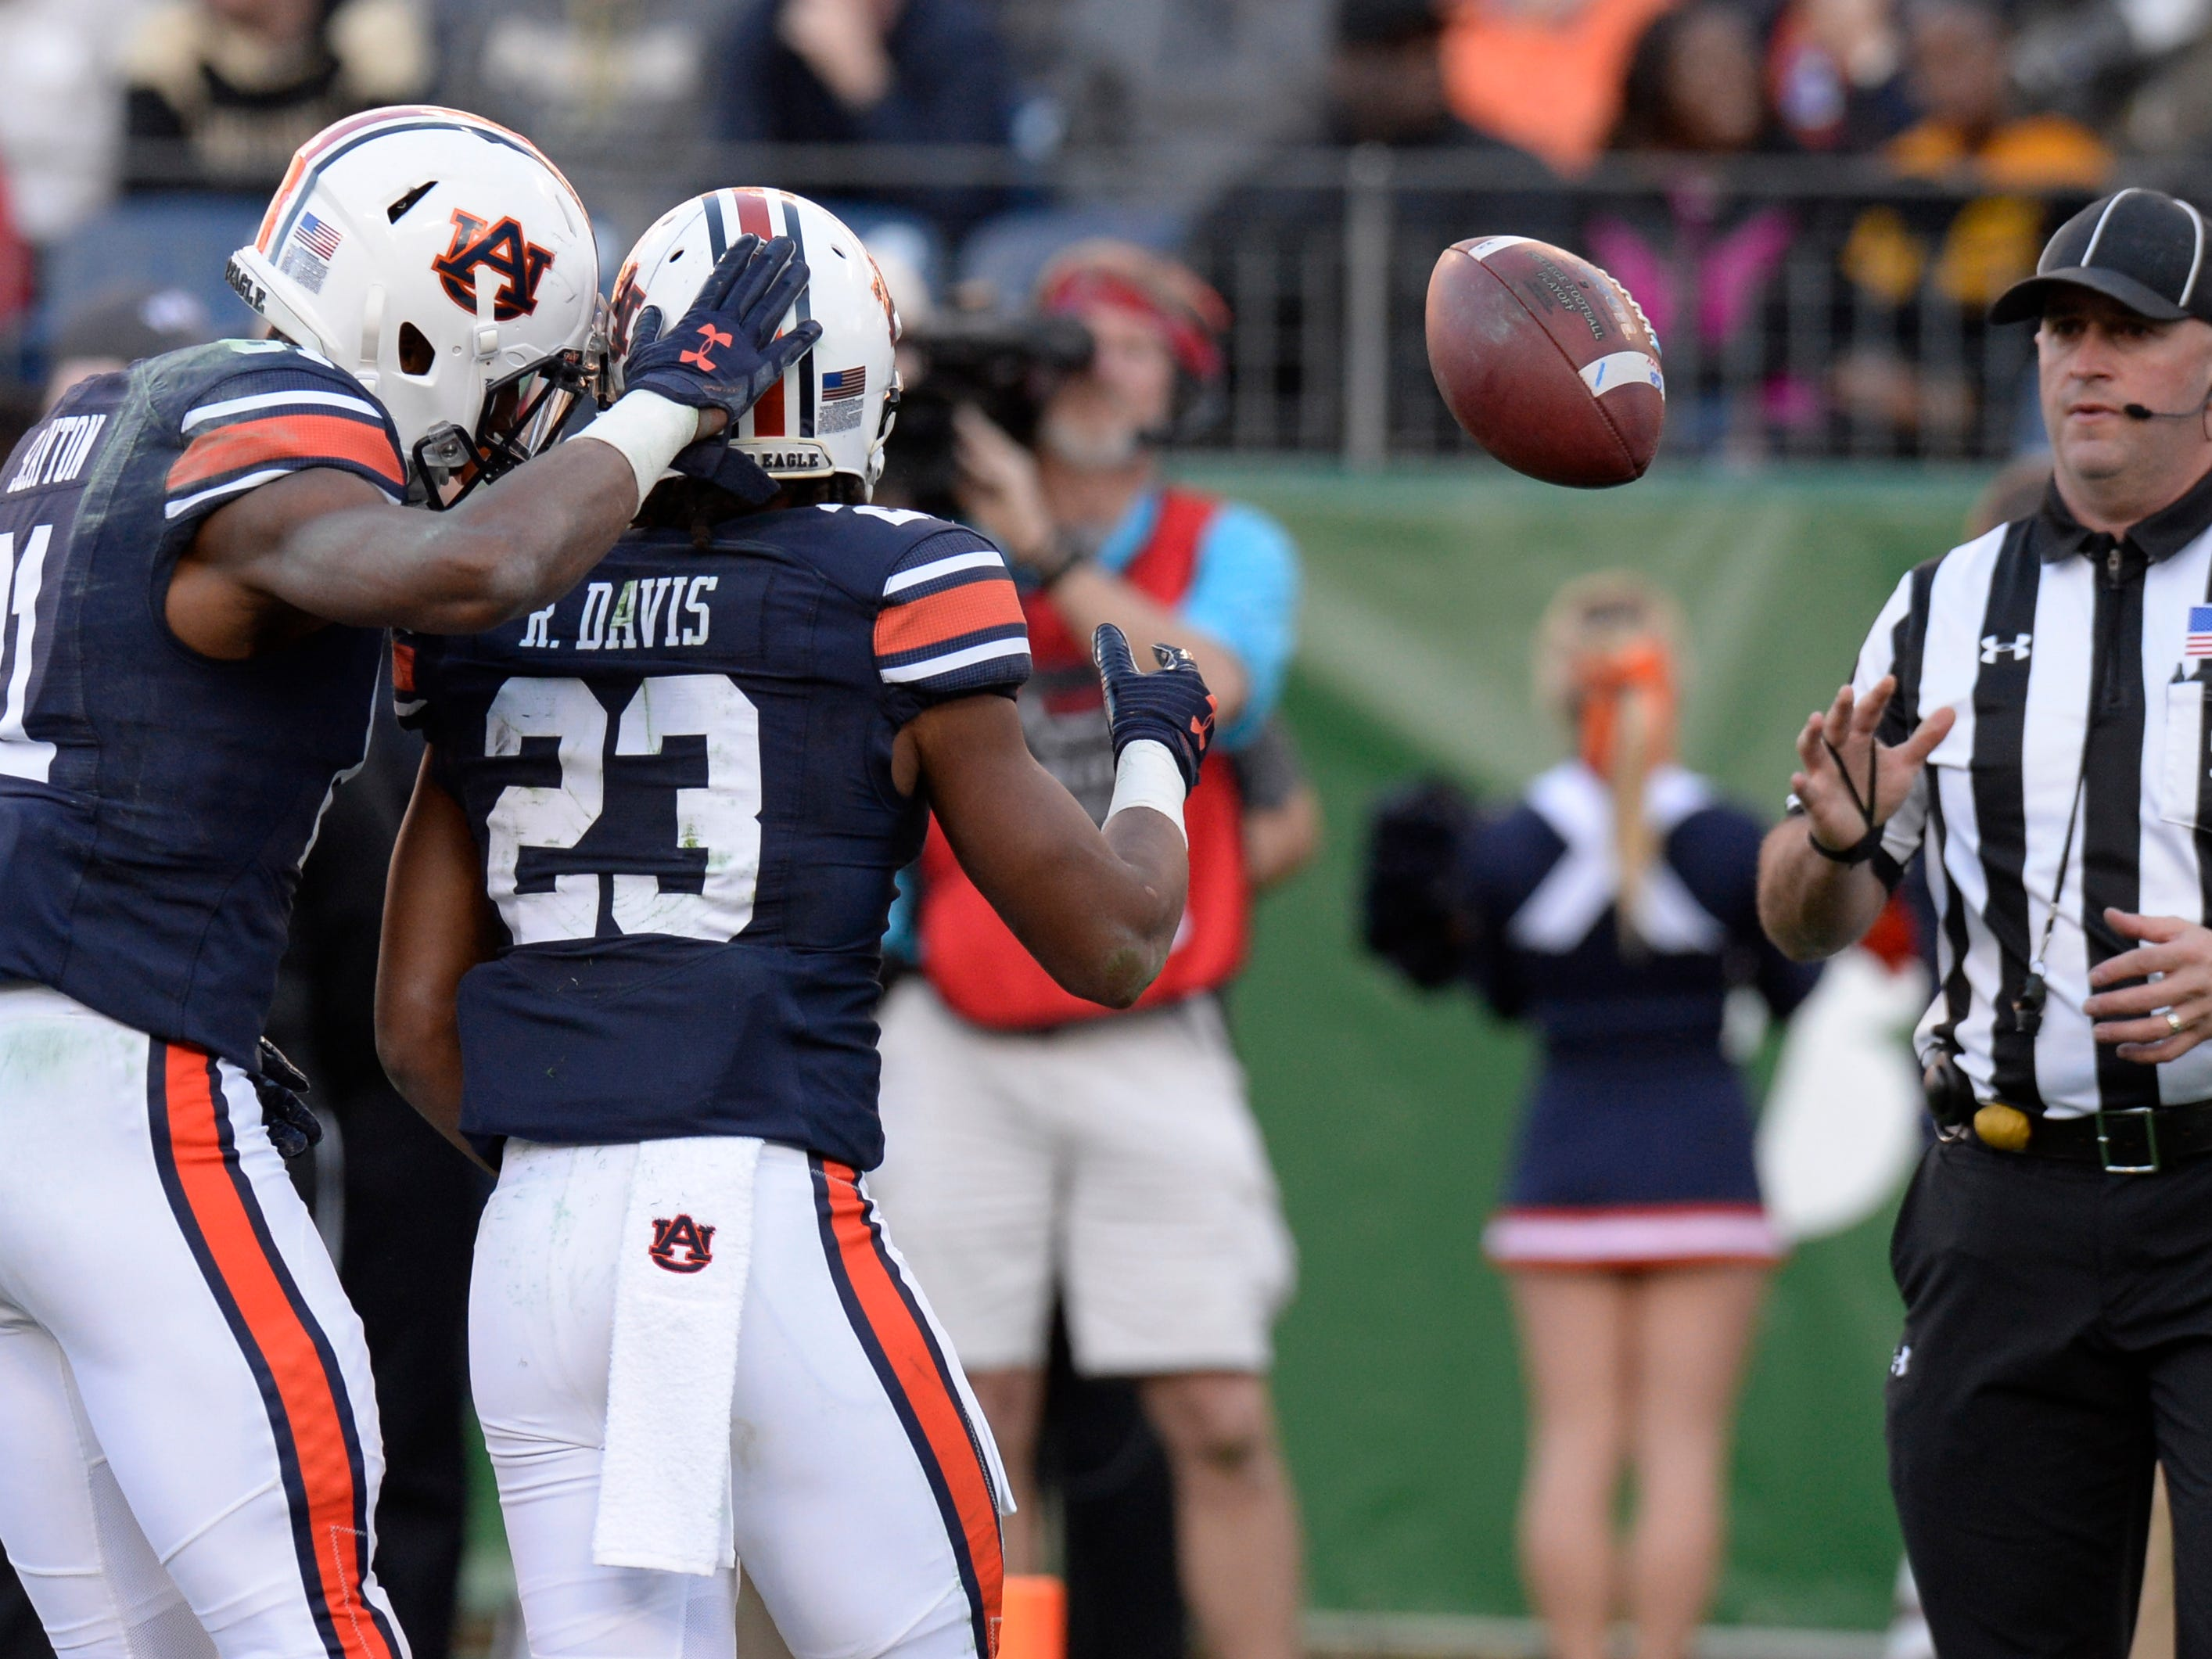 Auburn wide receiver Ryan Davis (23) celebrates his touchdown with wide receiver Darius Slayton (81) as tosses the ball to the referee in the third quarter of the Music City Bowl NCAA college football game Friday, Dec. 28, 2018, at Nissan Stadium in Nashville, Tenn.